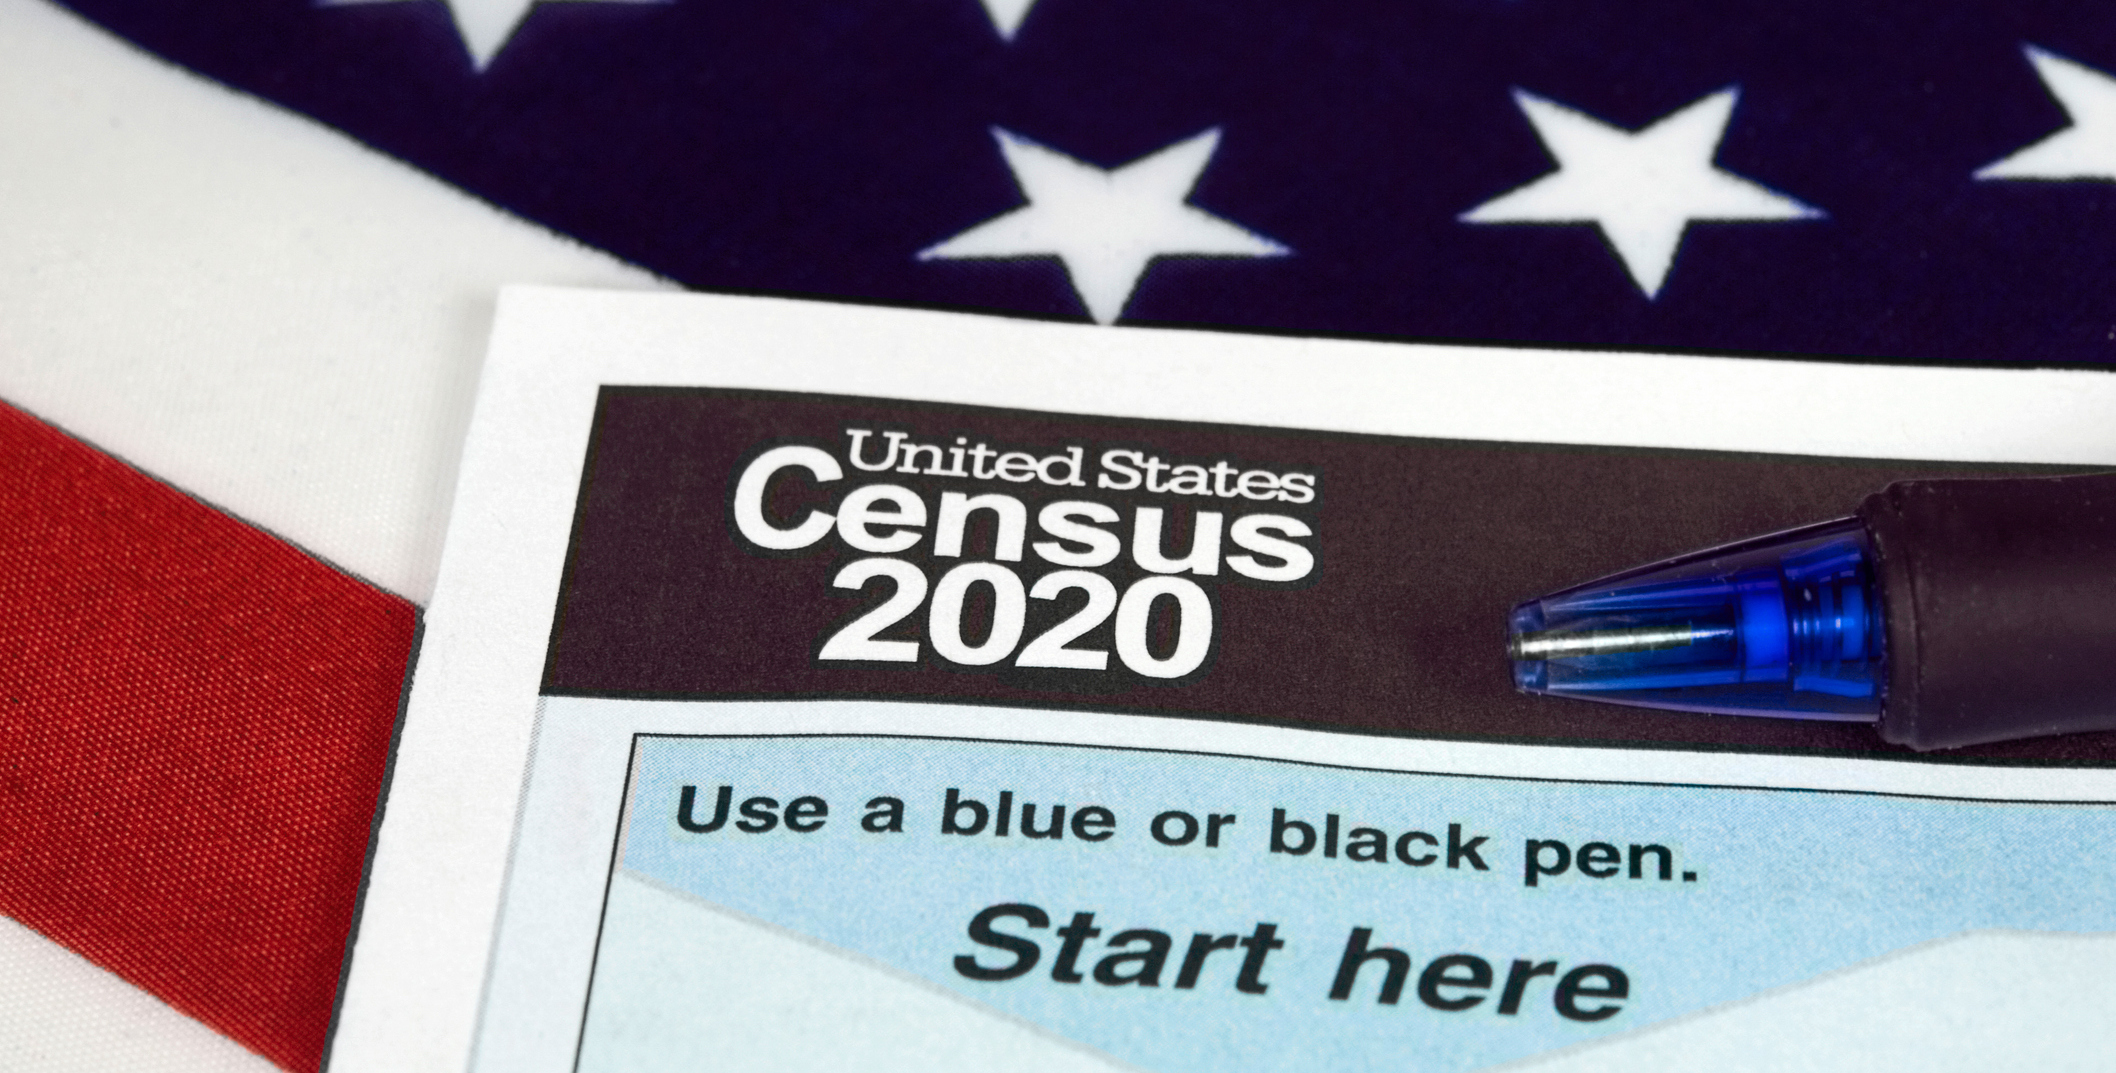 California could lose federal tax dollars due to inaccurate Census